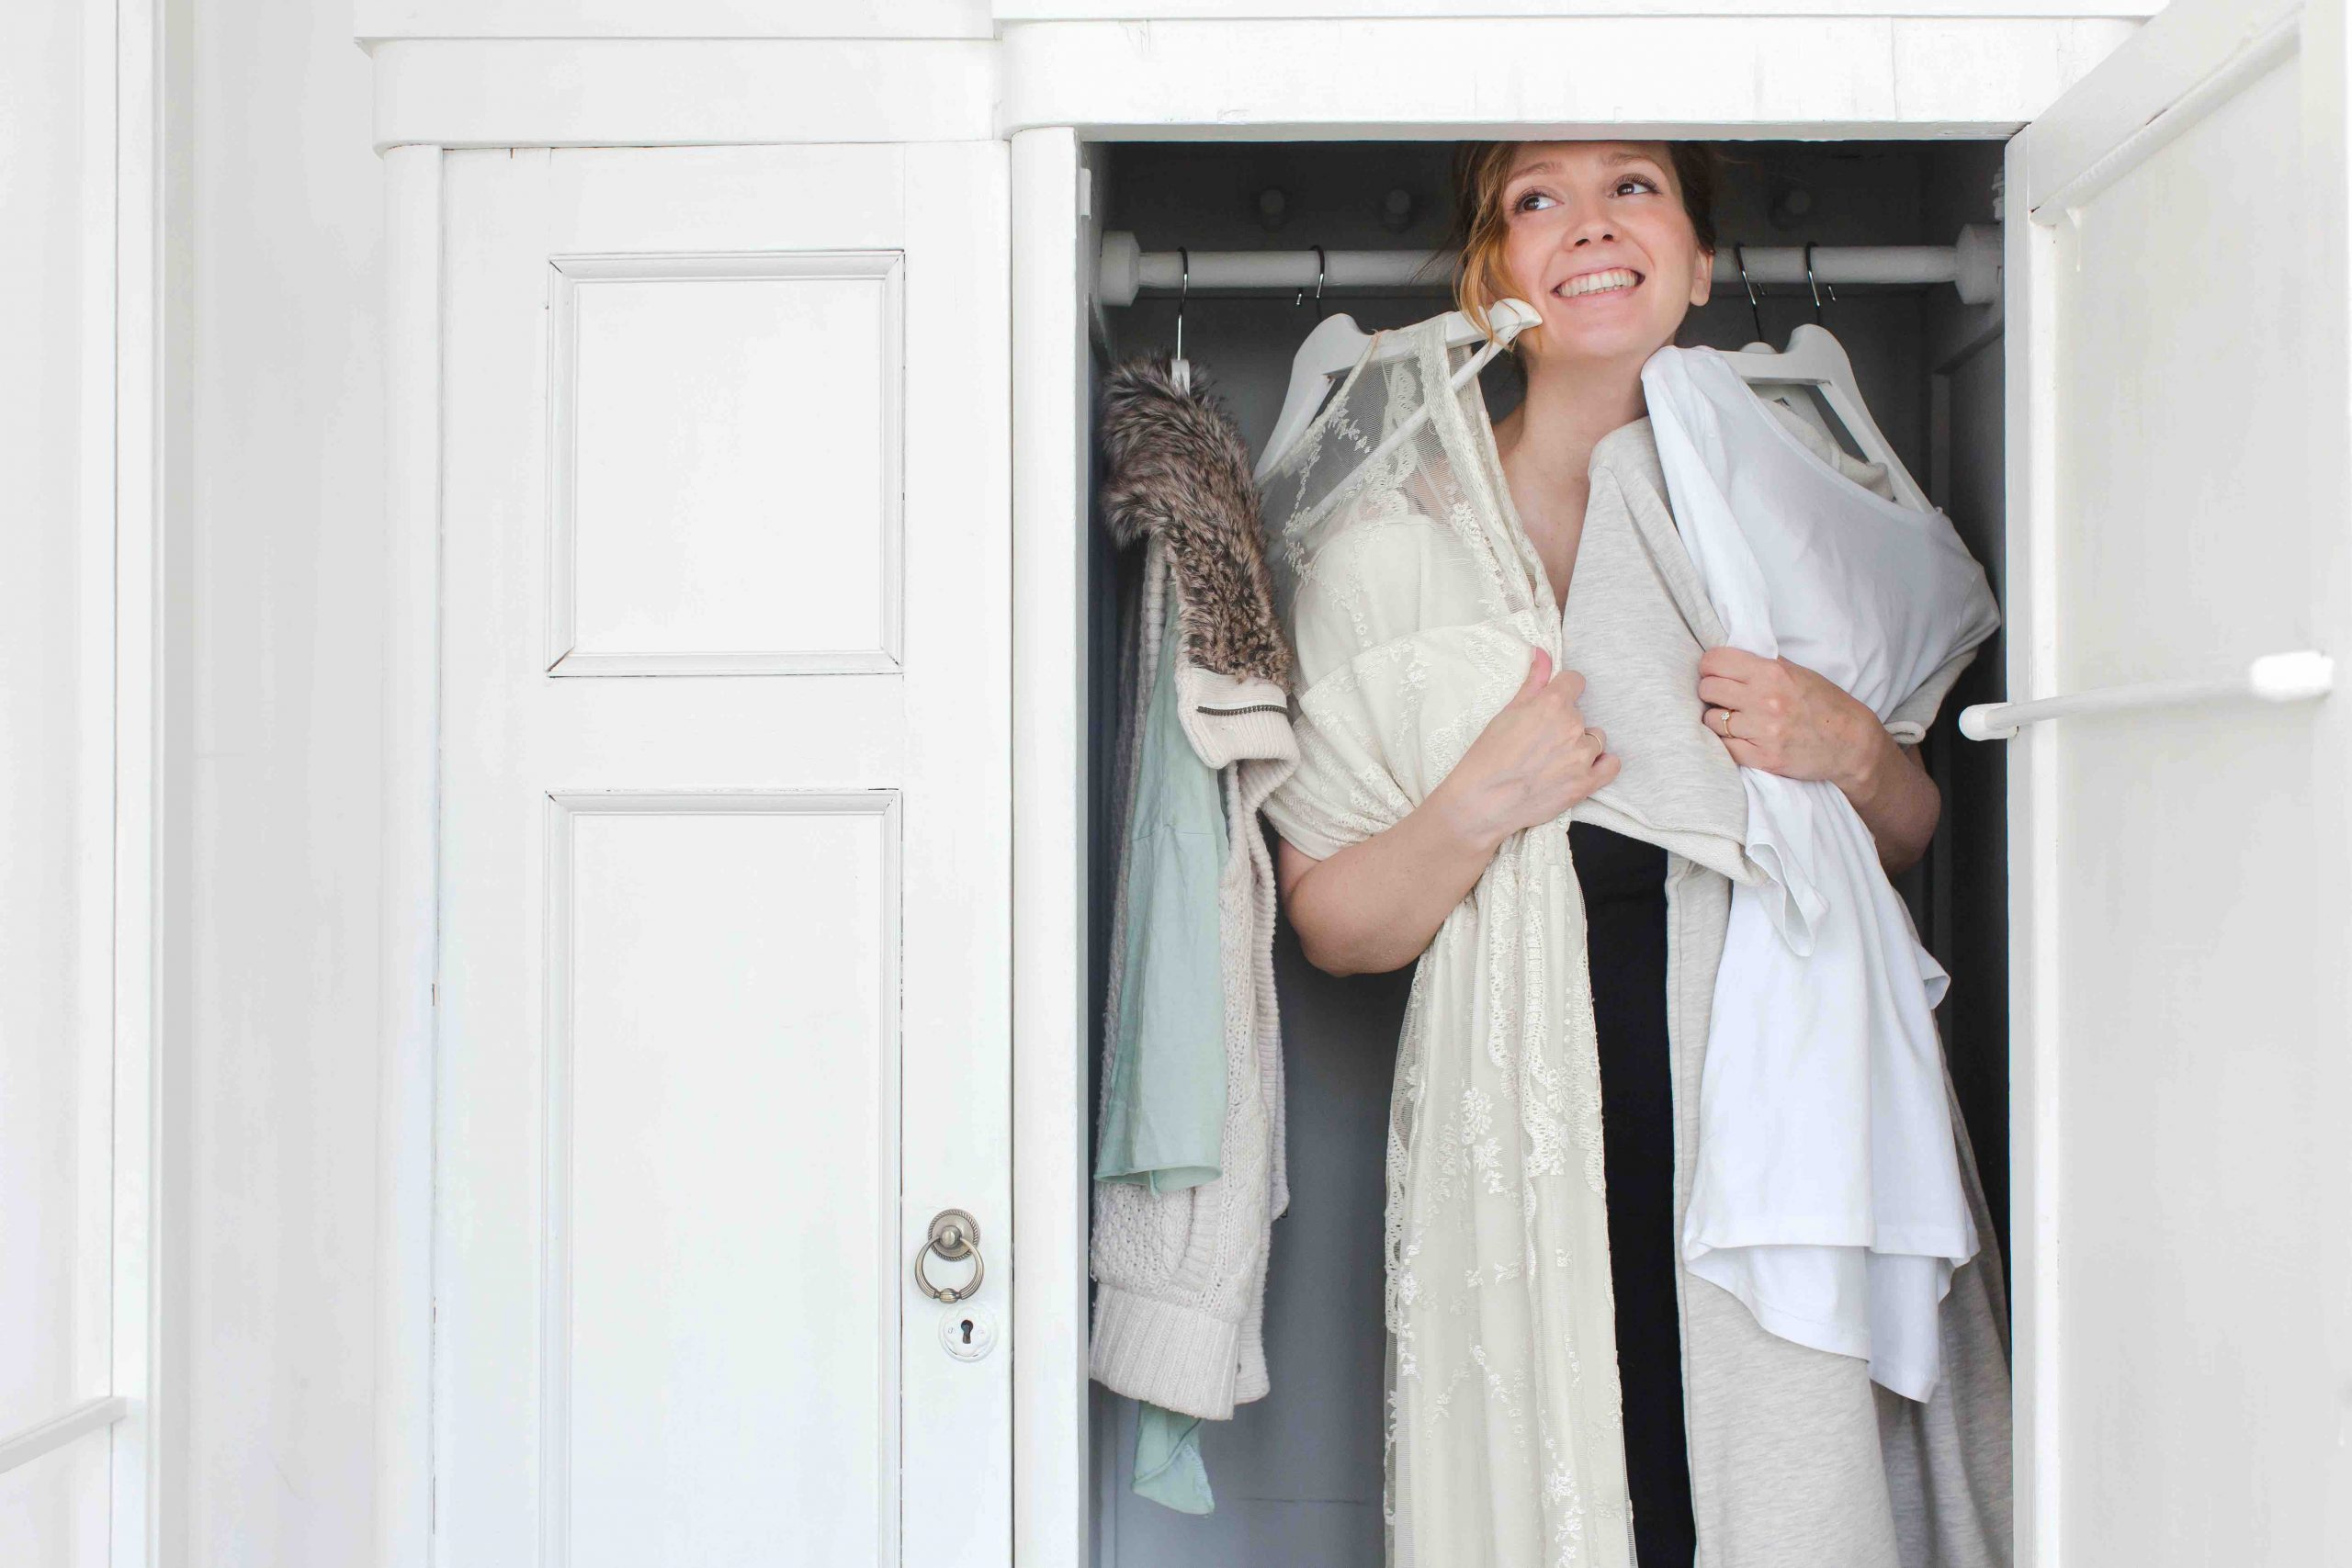 Woman laughs while choosing clothes in the closet